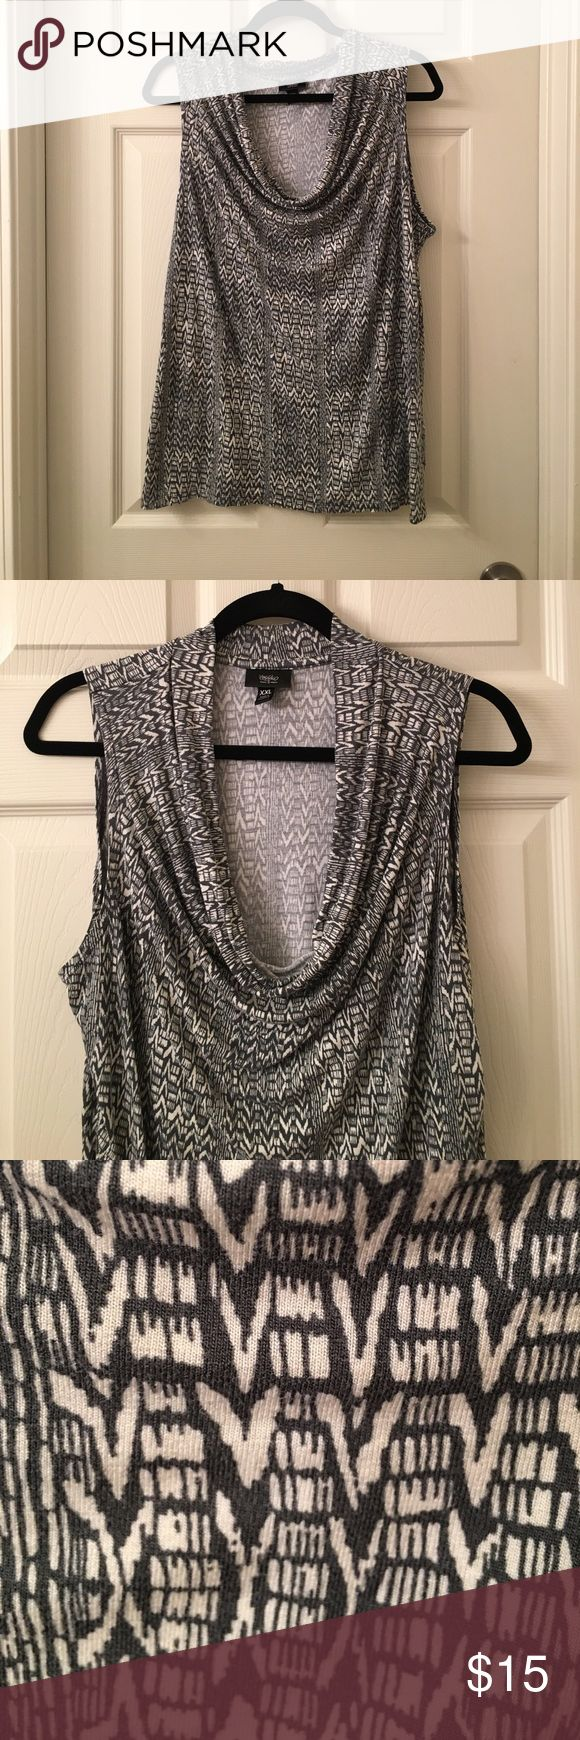 Ladies MOSSIMO gray modern cowl neck Tank Top XXL This is a Ladies MOSSIMO gray modern cowl neck Tank Top in a sz XXL, stretchy and soft! Good used condition! I ship fast! Happy poshing friends! mossimo Tops Tank Tops